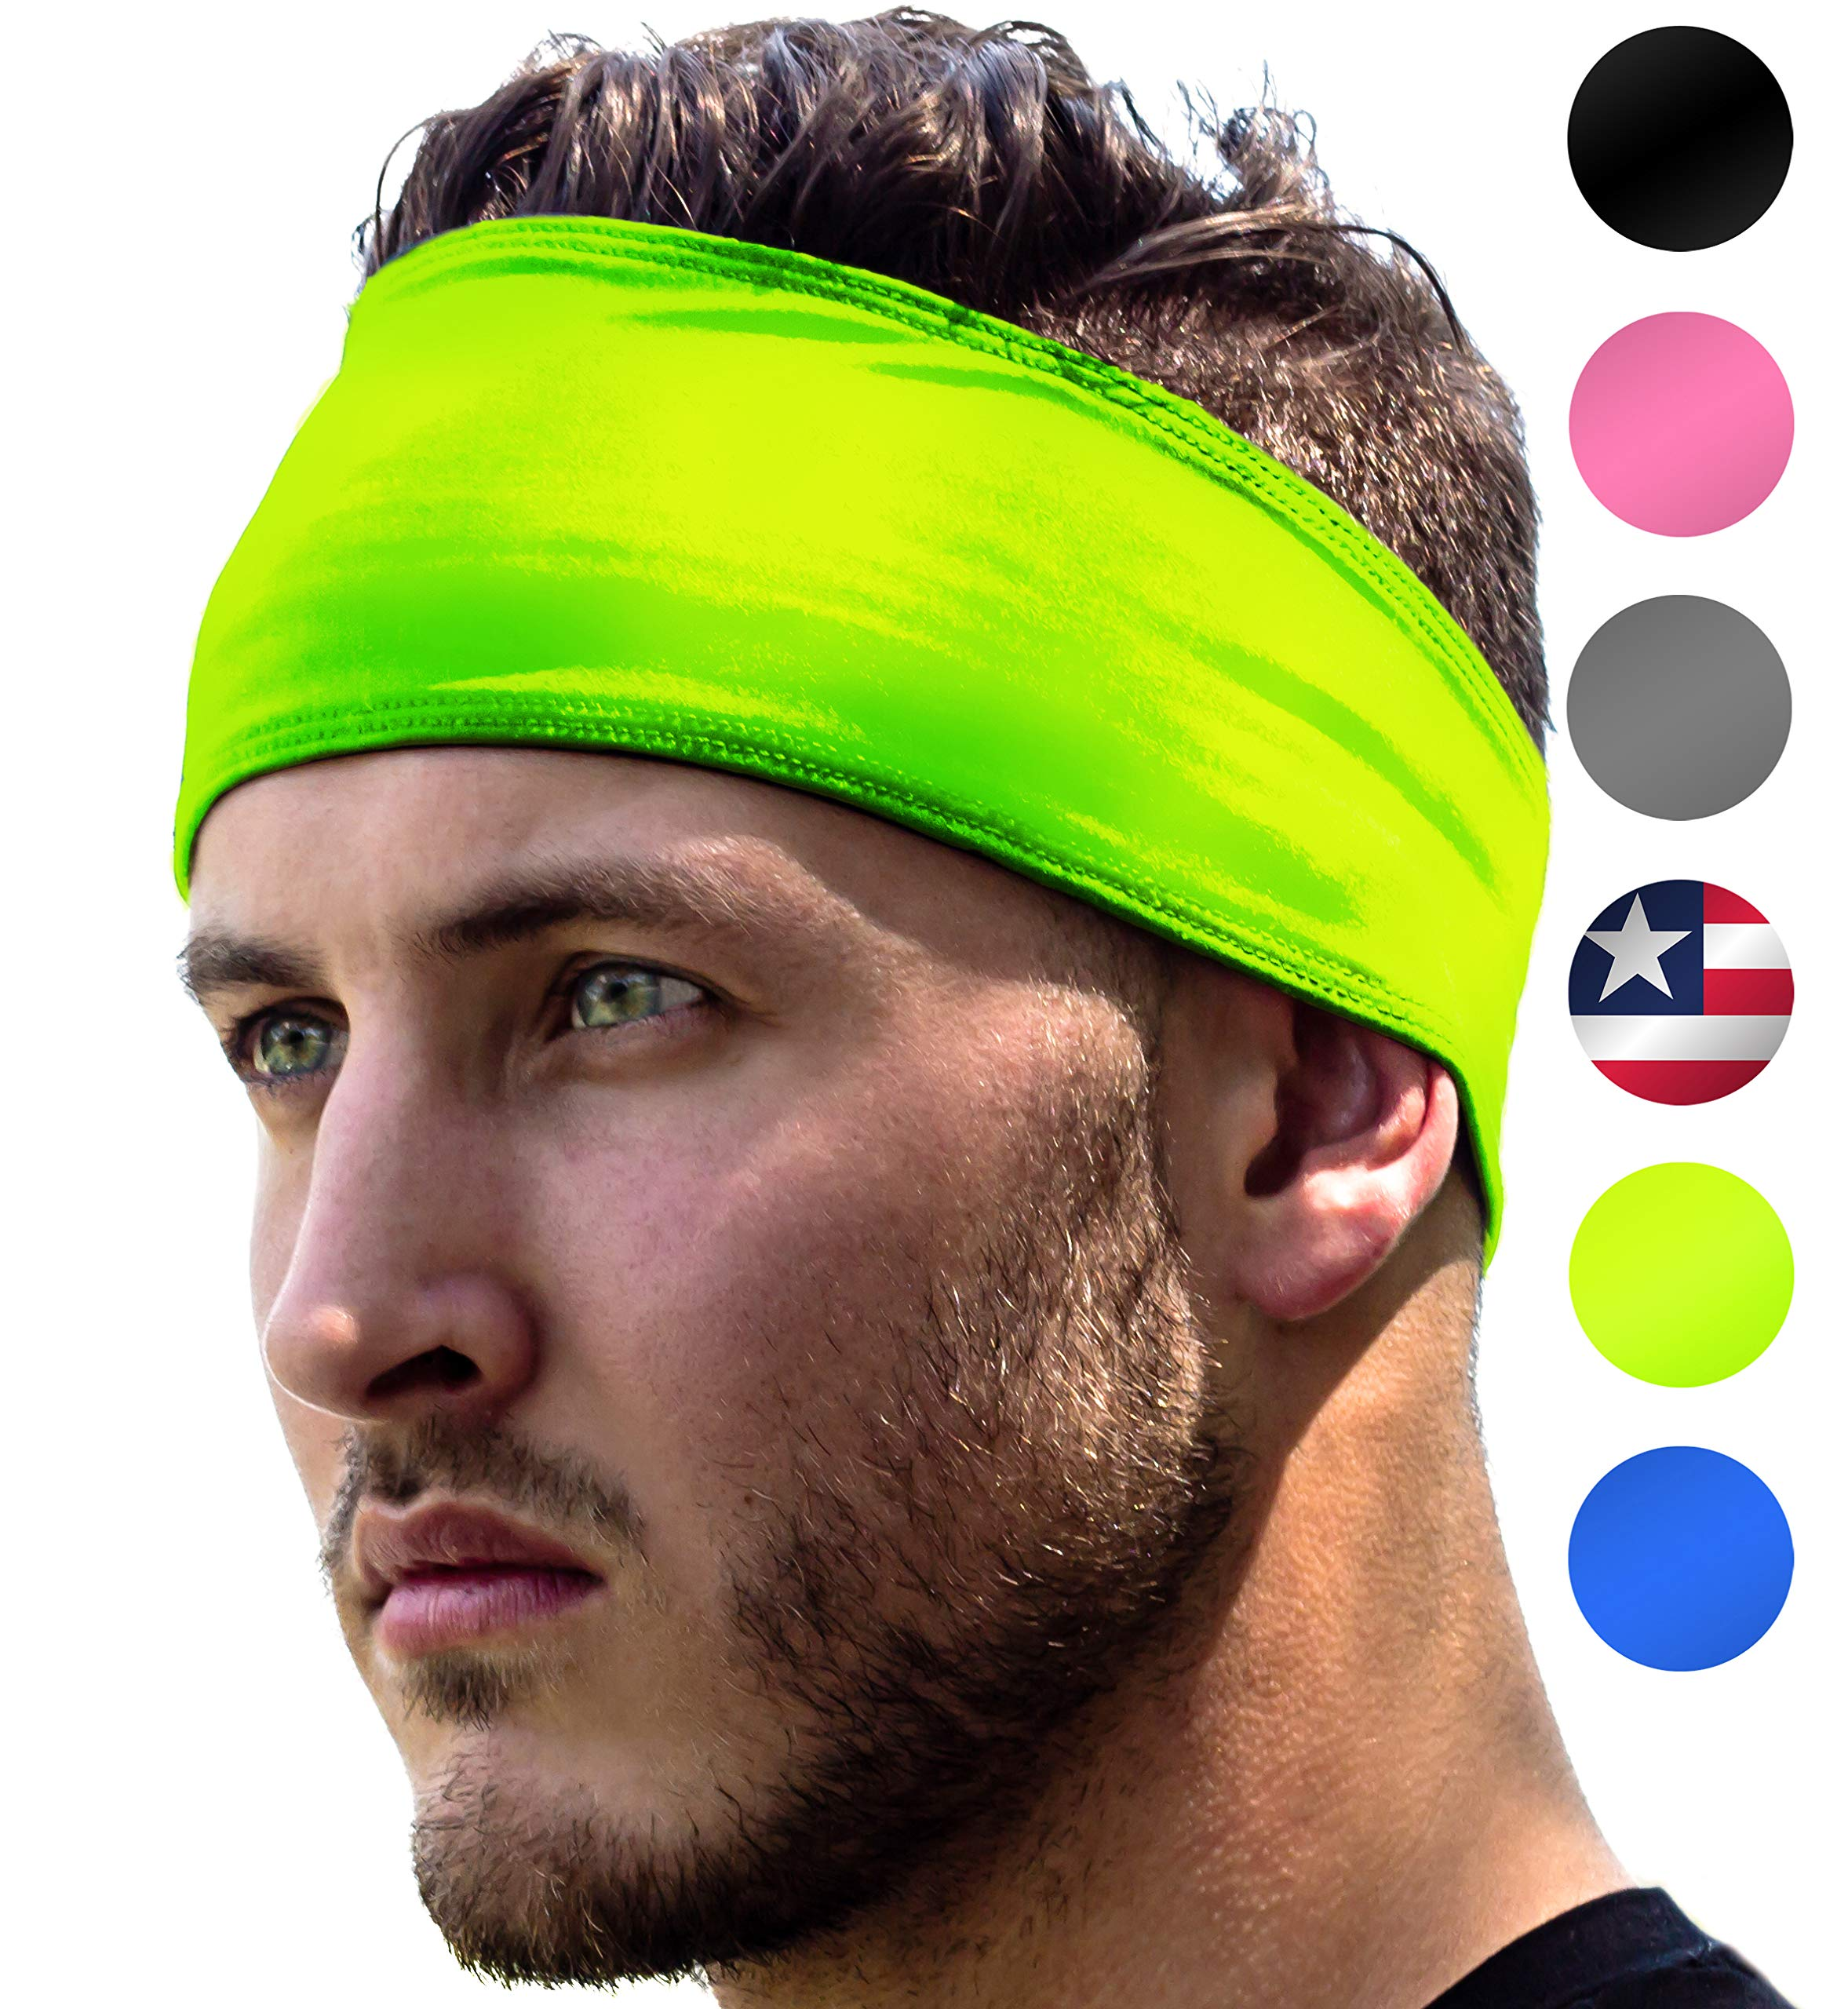 High Visibility Headband: Sport Headbands For Running & Jogging Safety at Night. Fits Women Men Kids. Replace Reflective Gear Vest Jacket Shirt For Bright Visible Sweatband. High-Vis Florescent Yellow by E Tronic Edge